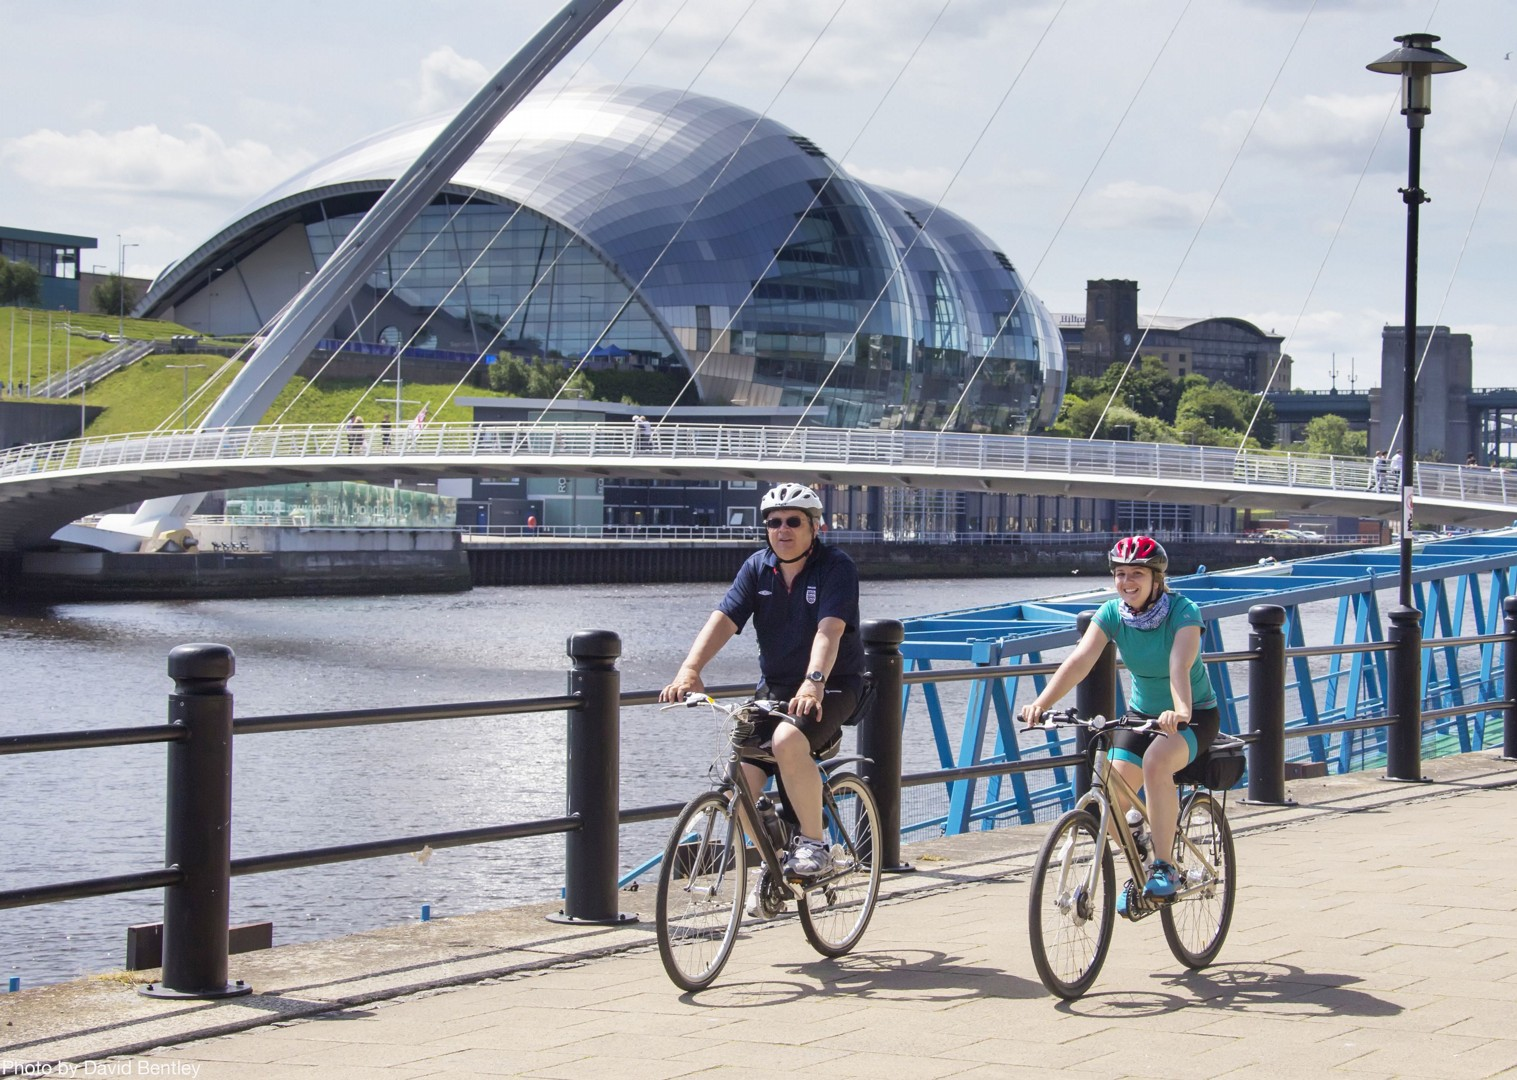 hadrians-cycleway-self-guided-family-trip-newcastle-quayside-millenium-bridge.jpg - UK - Hadrian's Cycleway - Family Cycling